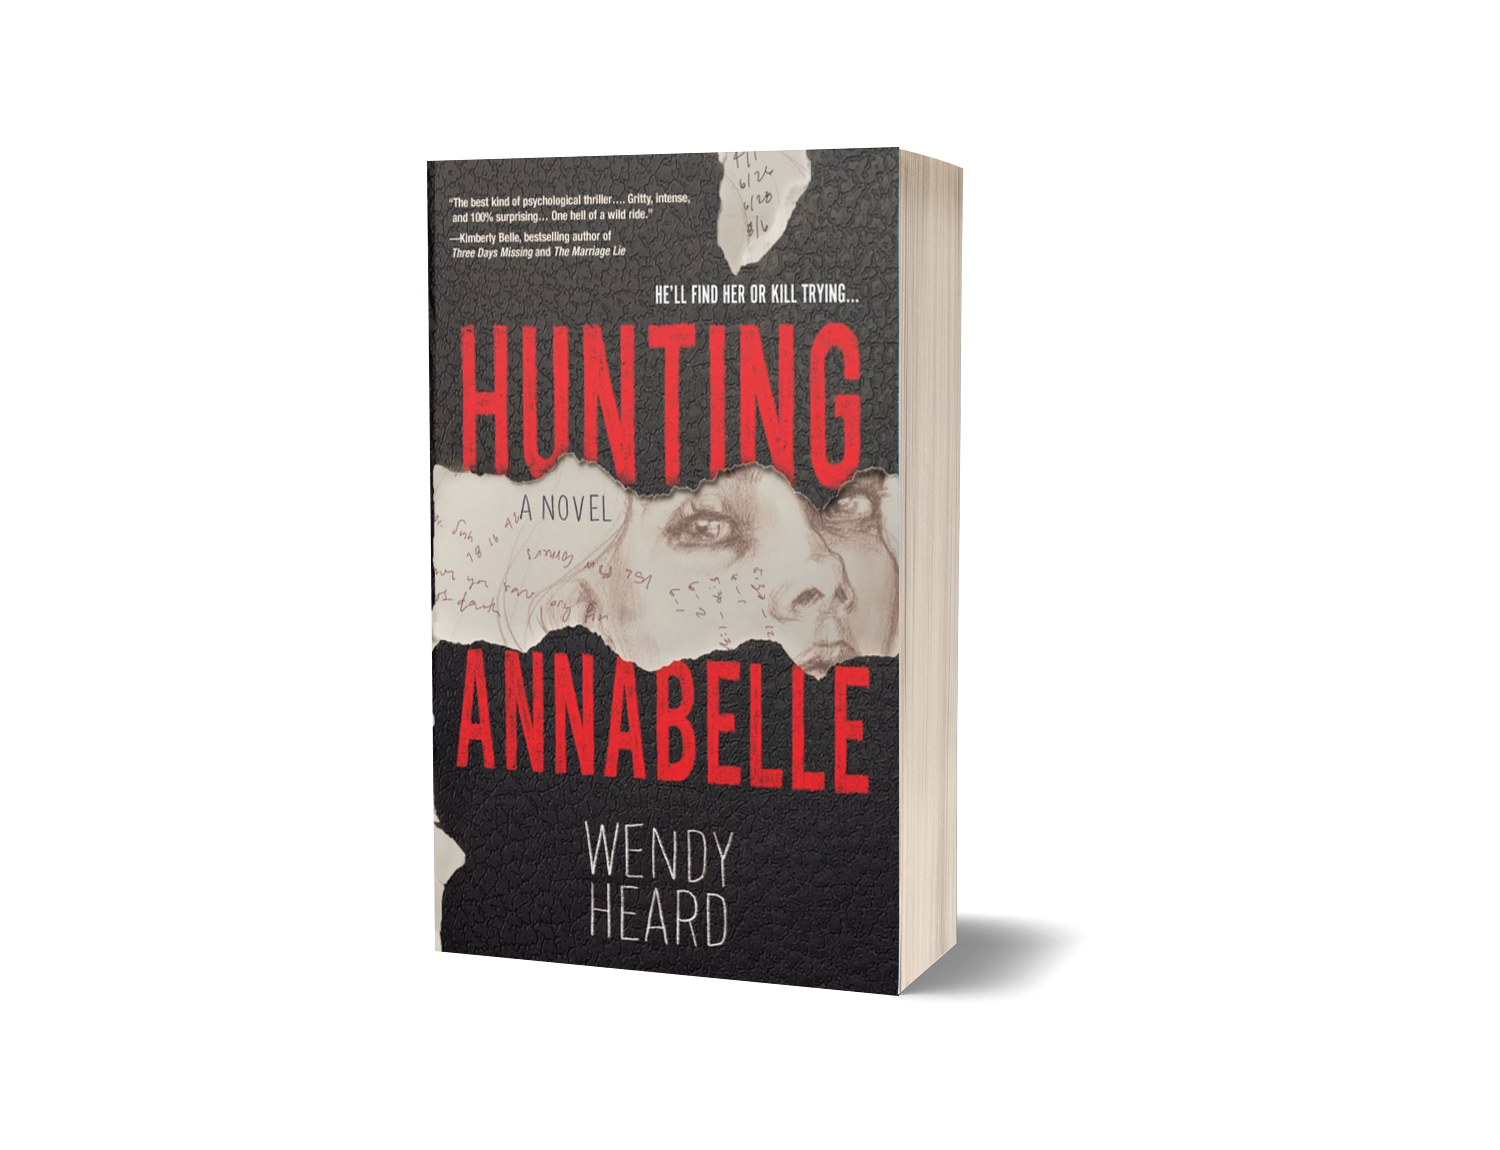 """Insomnia delivers Widdicks' usual bone-chilling dose of creeping dread and atmospheric lyricism.""   -Wendy Heard, author of Hunting Annabelle"